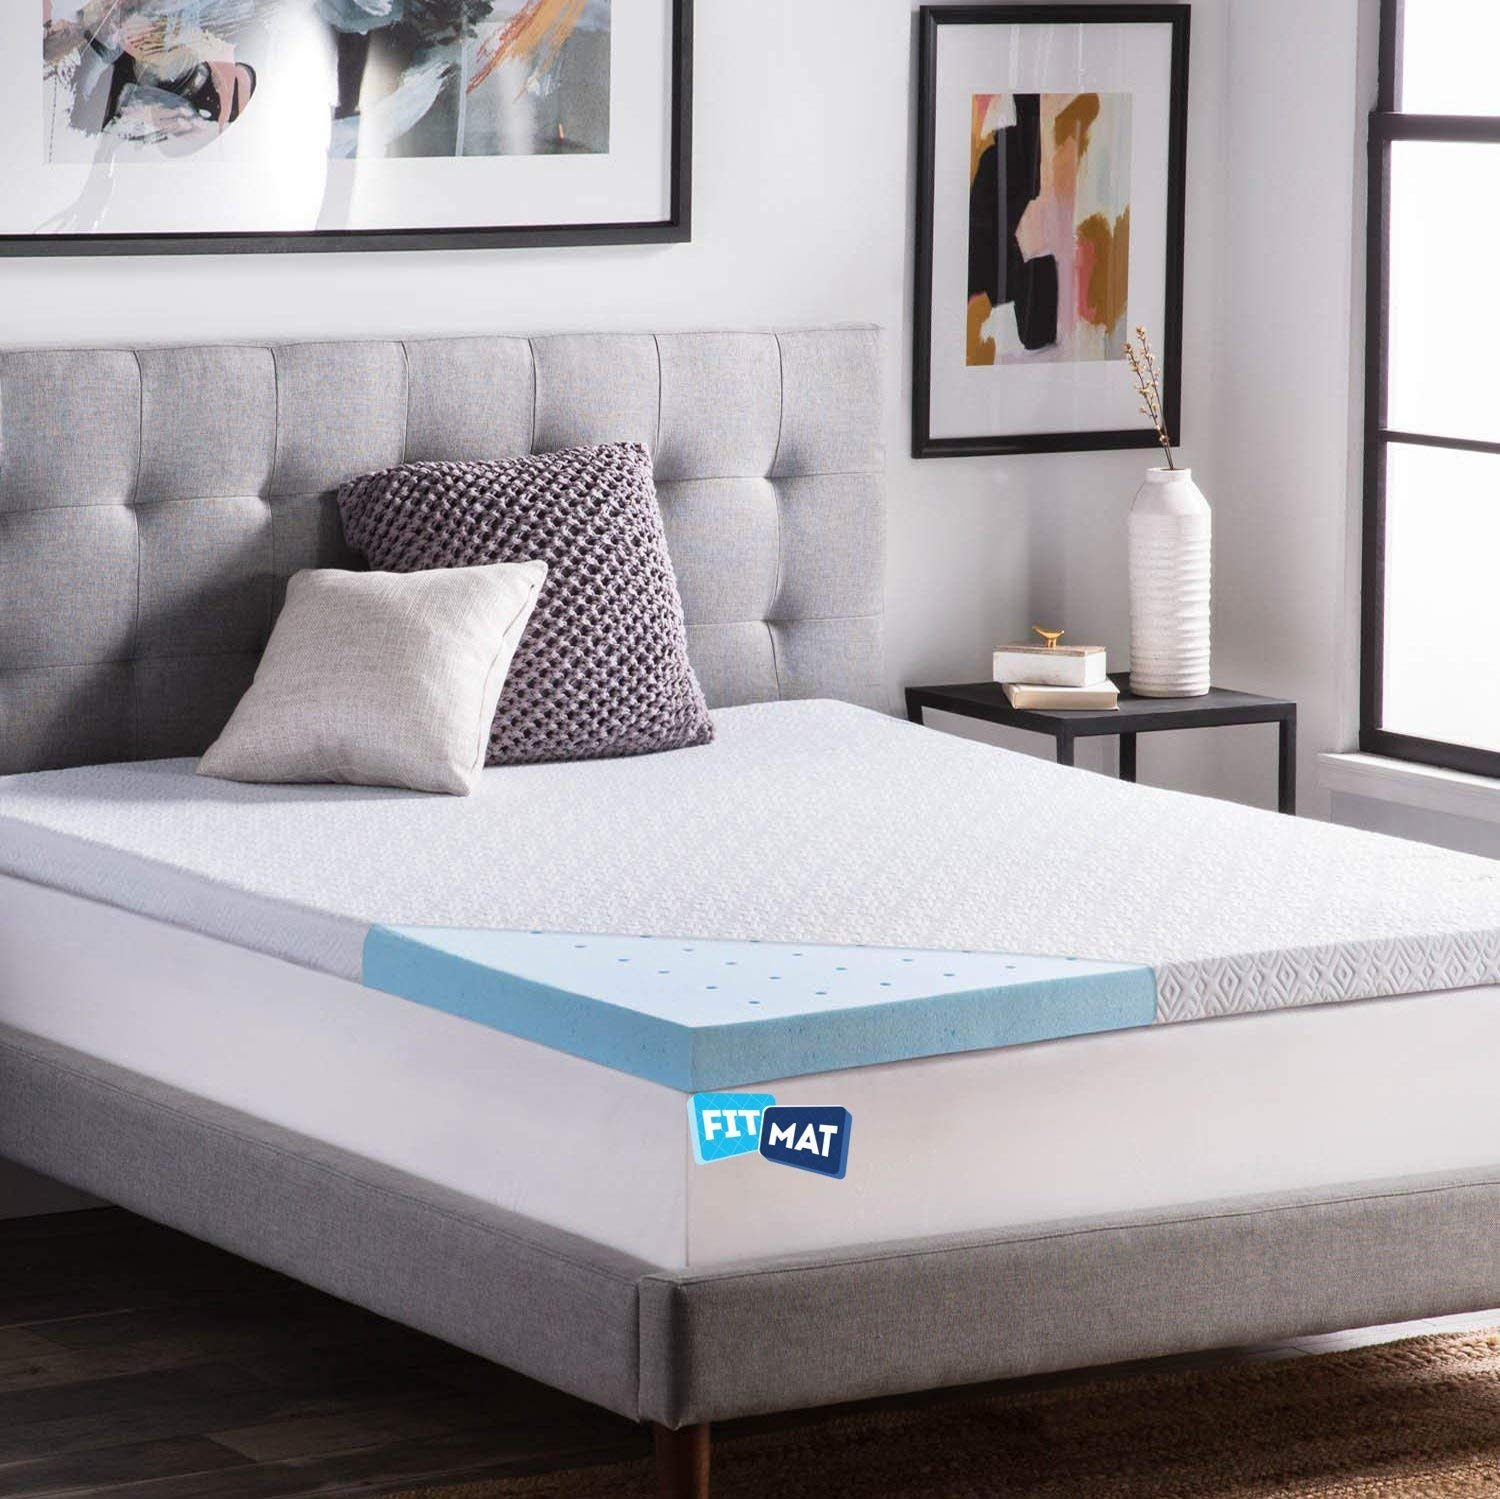 Buy Fitmat Cool Gel Orthopedic Support Memory Foam Mattress Topper Blue 70 X 75 X 2 Online At Low Prices In India Amazon In